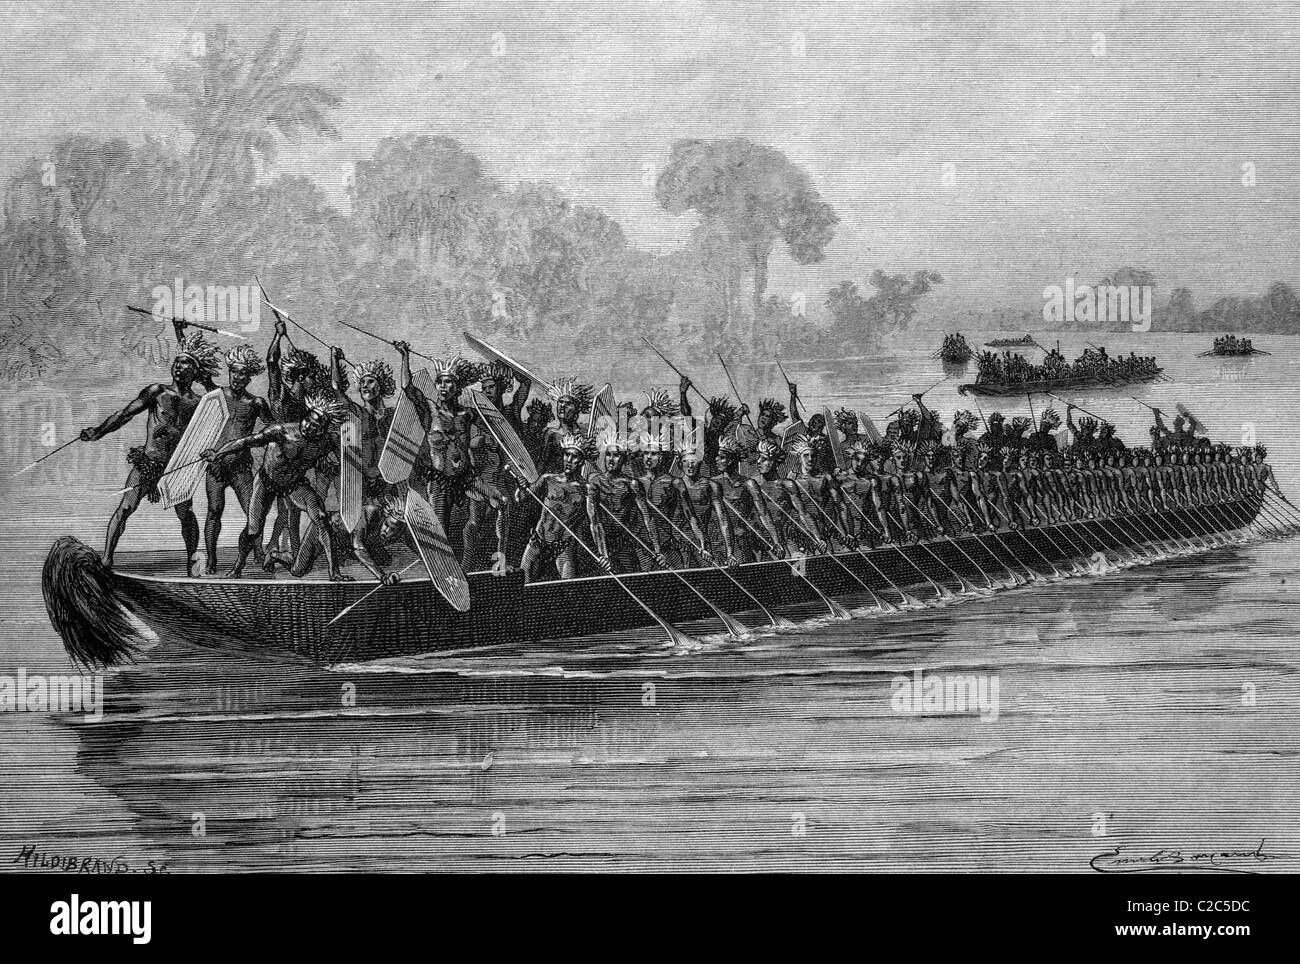 Large war canoe of the Congolese people on the Aruwimi River, historical illustration, circa 1886 - Stock Image